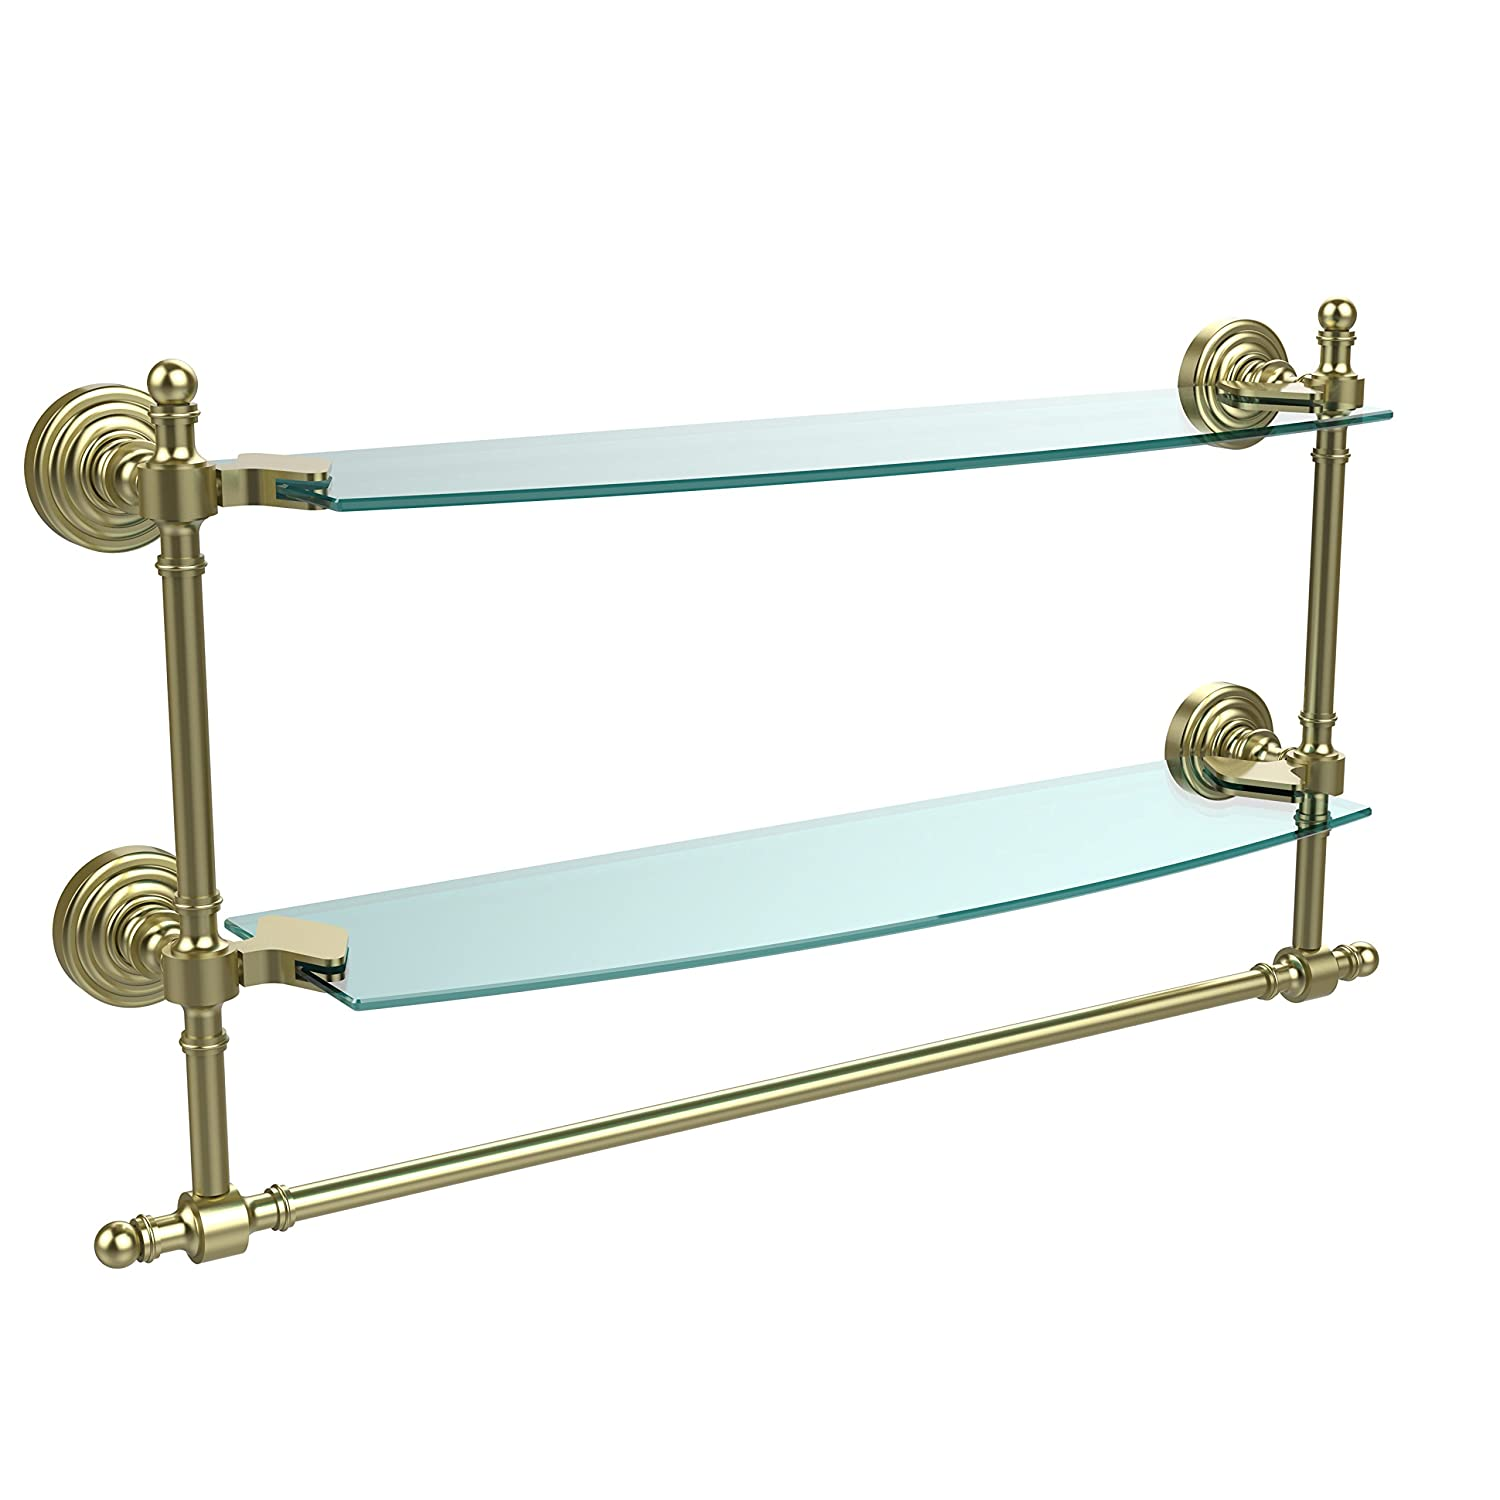 Allied Brass RW-34TB//24-BBR Retro Wave Collection 24 Inch Two Tiered Glass Shelf with Integrated Towel Bar Brushed Bronze